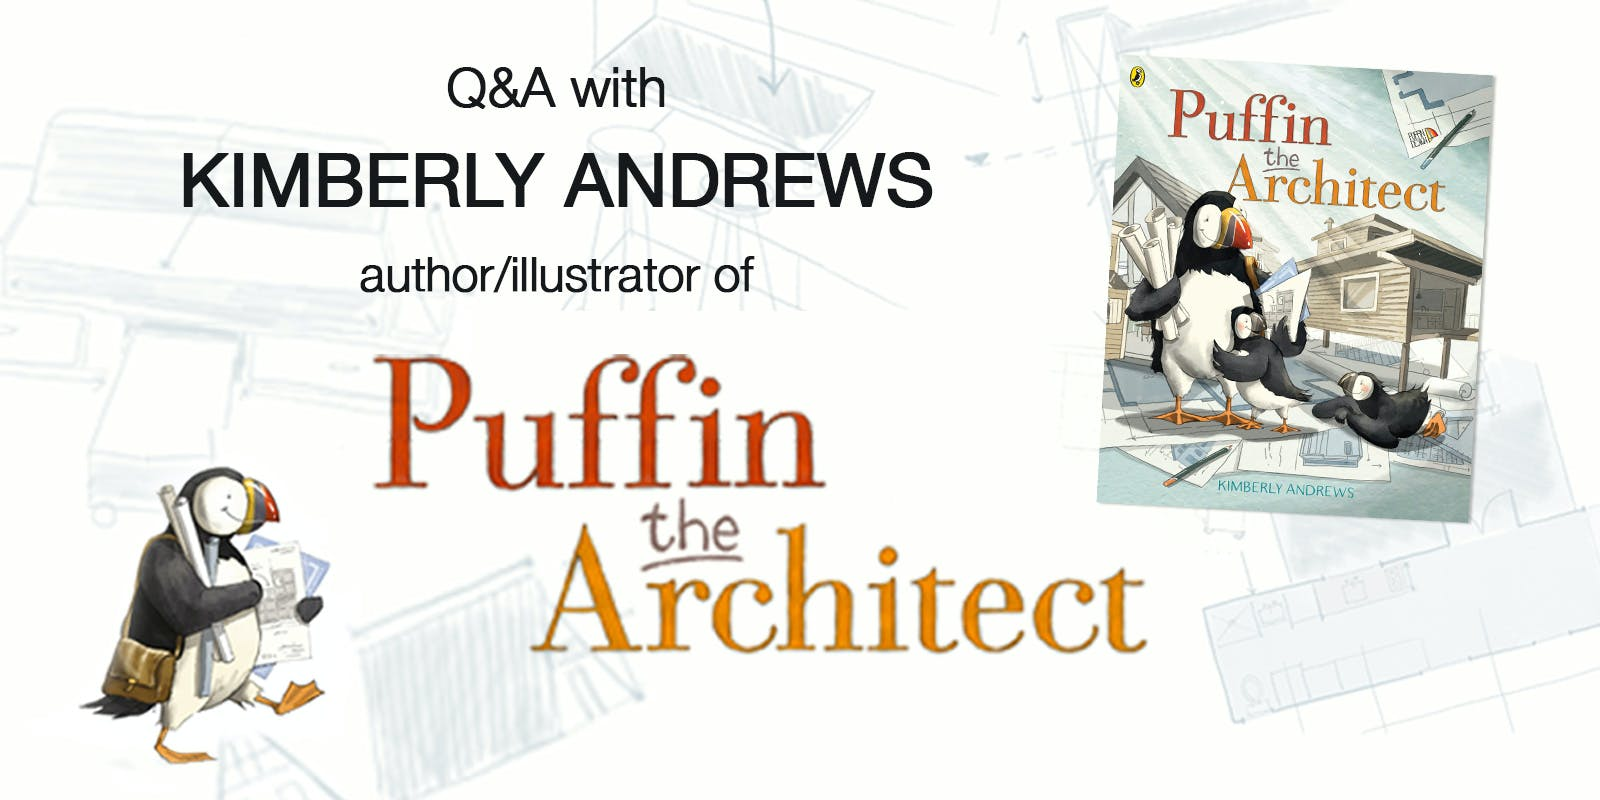 Q&A with Kimberly Andrews